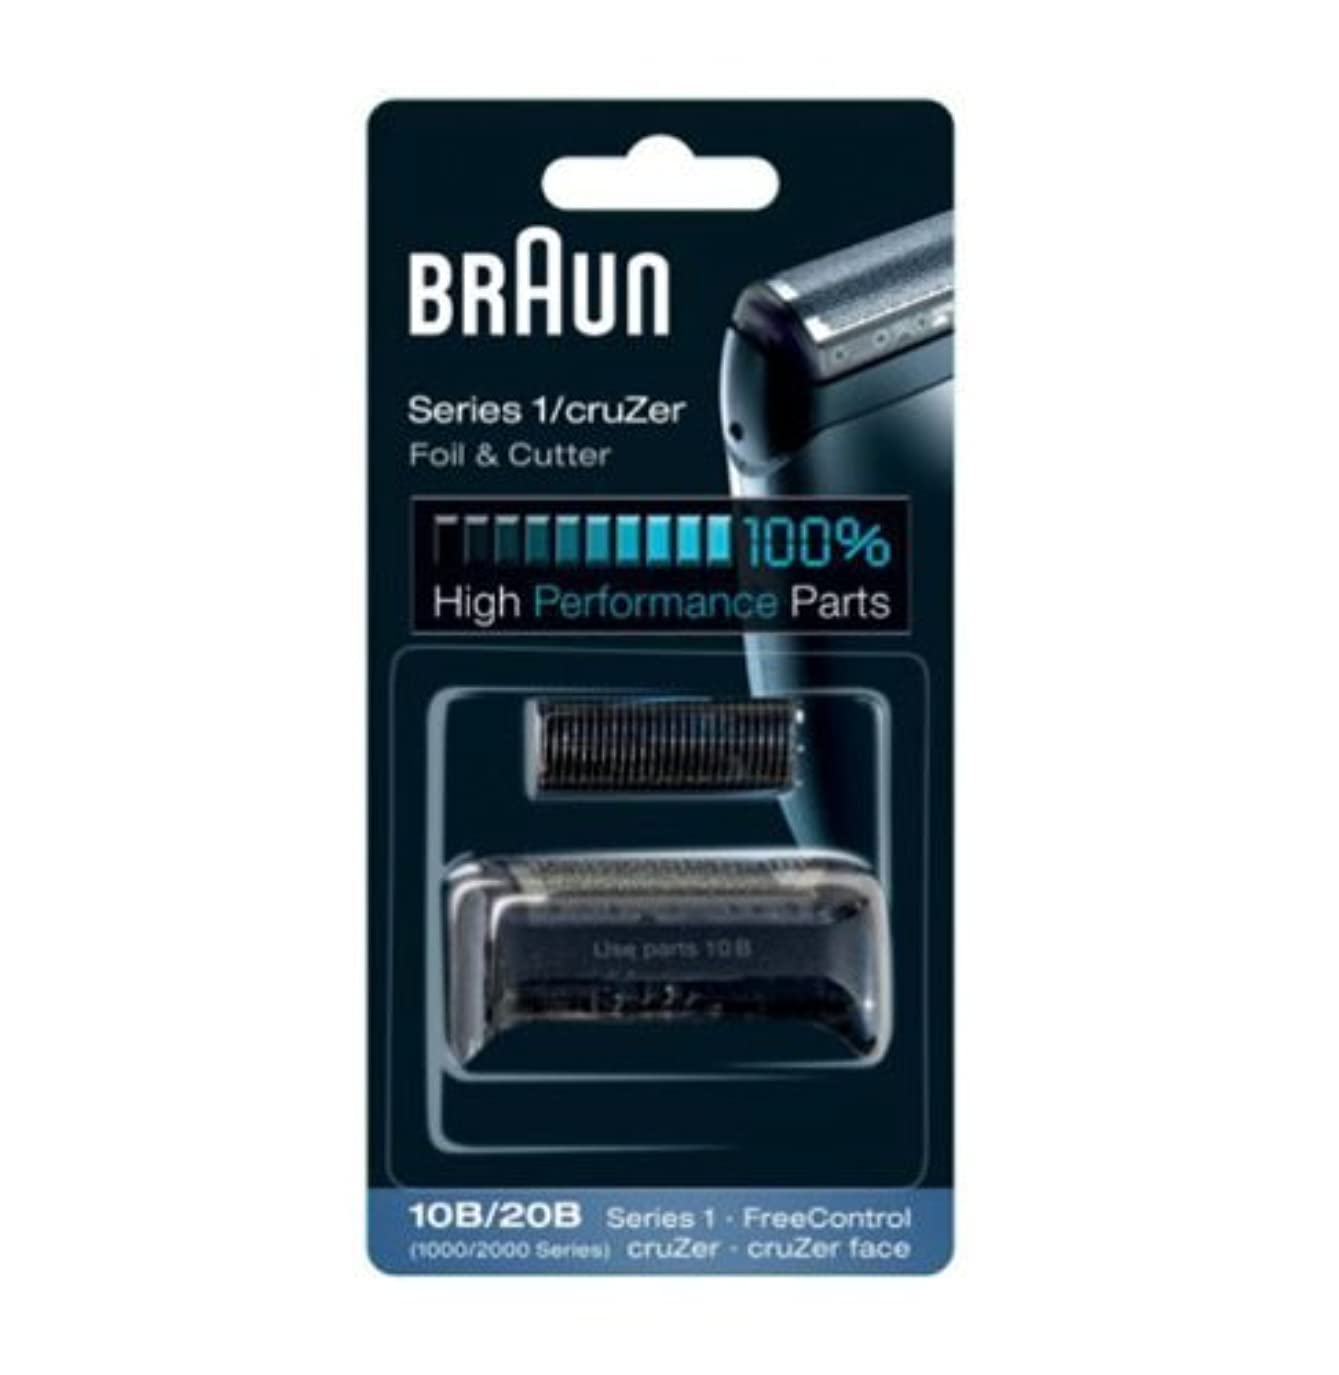 現れる多数のリーBraun Replacement Foil & Cutter - 10B, Series 1,FreeControl - 1000 Series by Braun [並行輸入品]